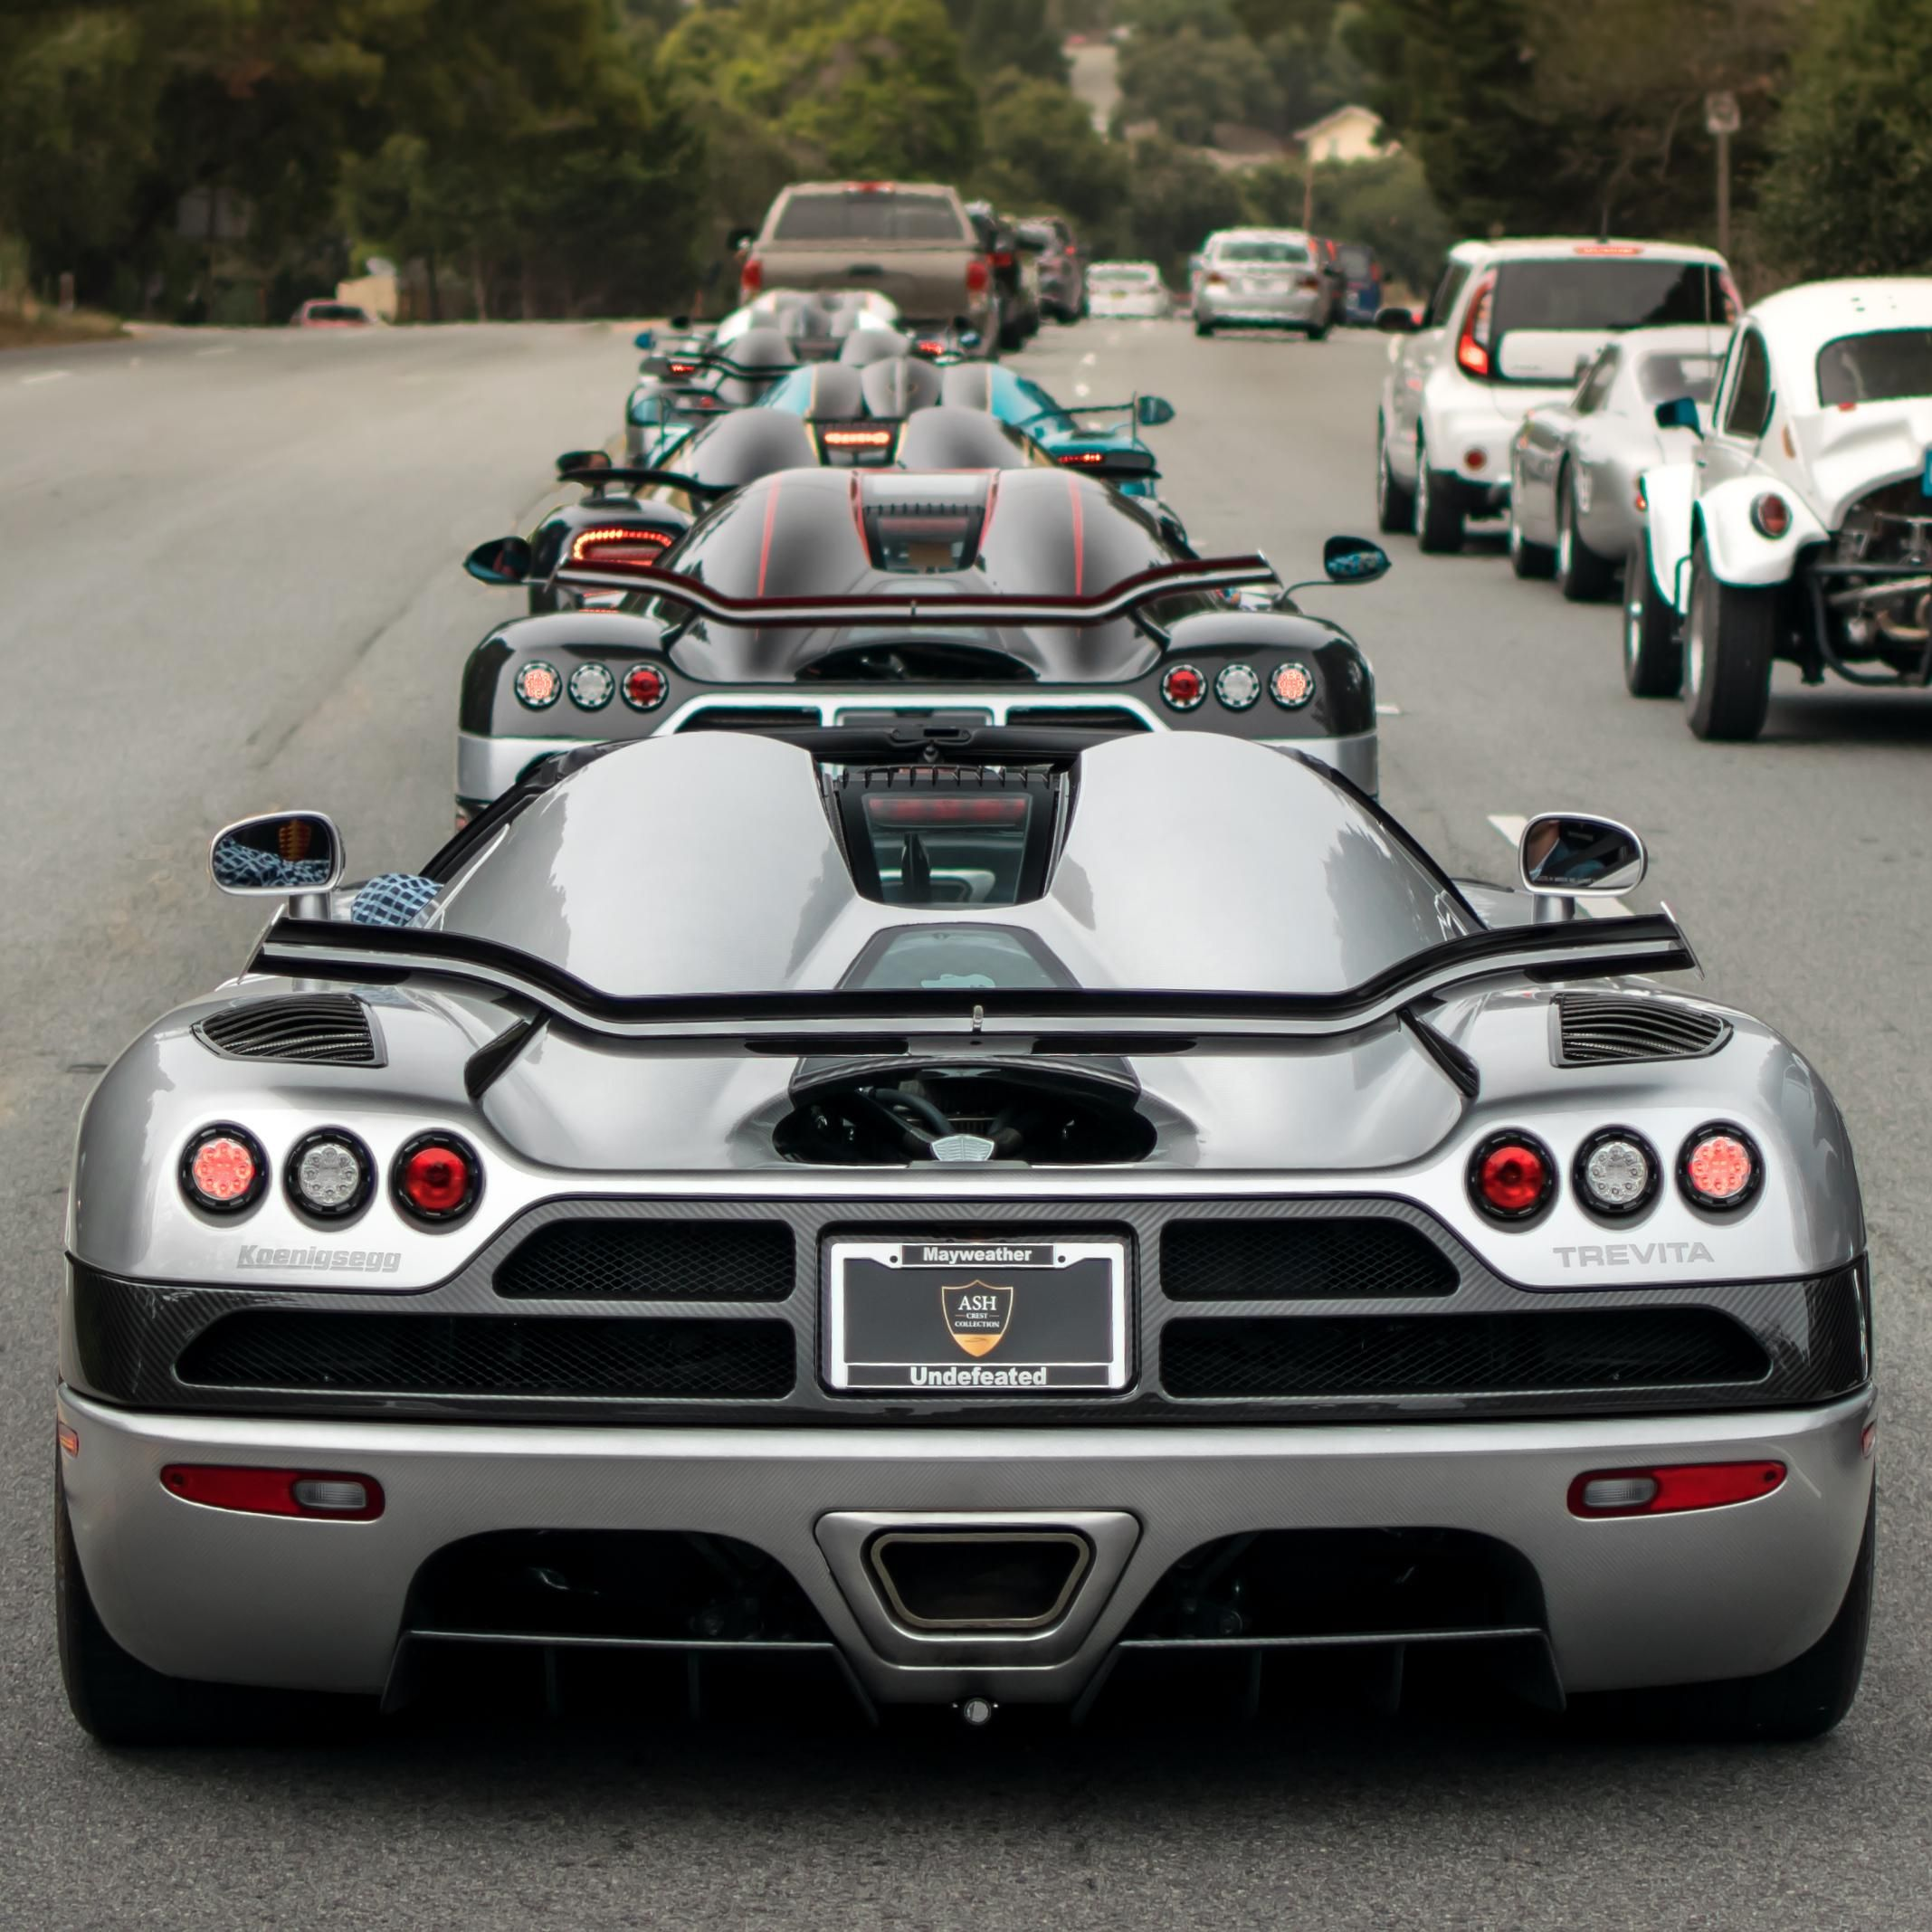 Car Week Egg Lineup! Going Closest To Farthest Koenigsegg CCXR Trevita Koenigsegg  CCX With The